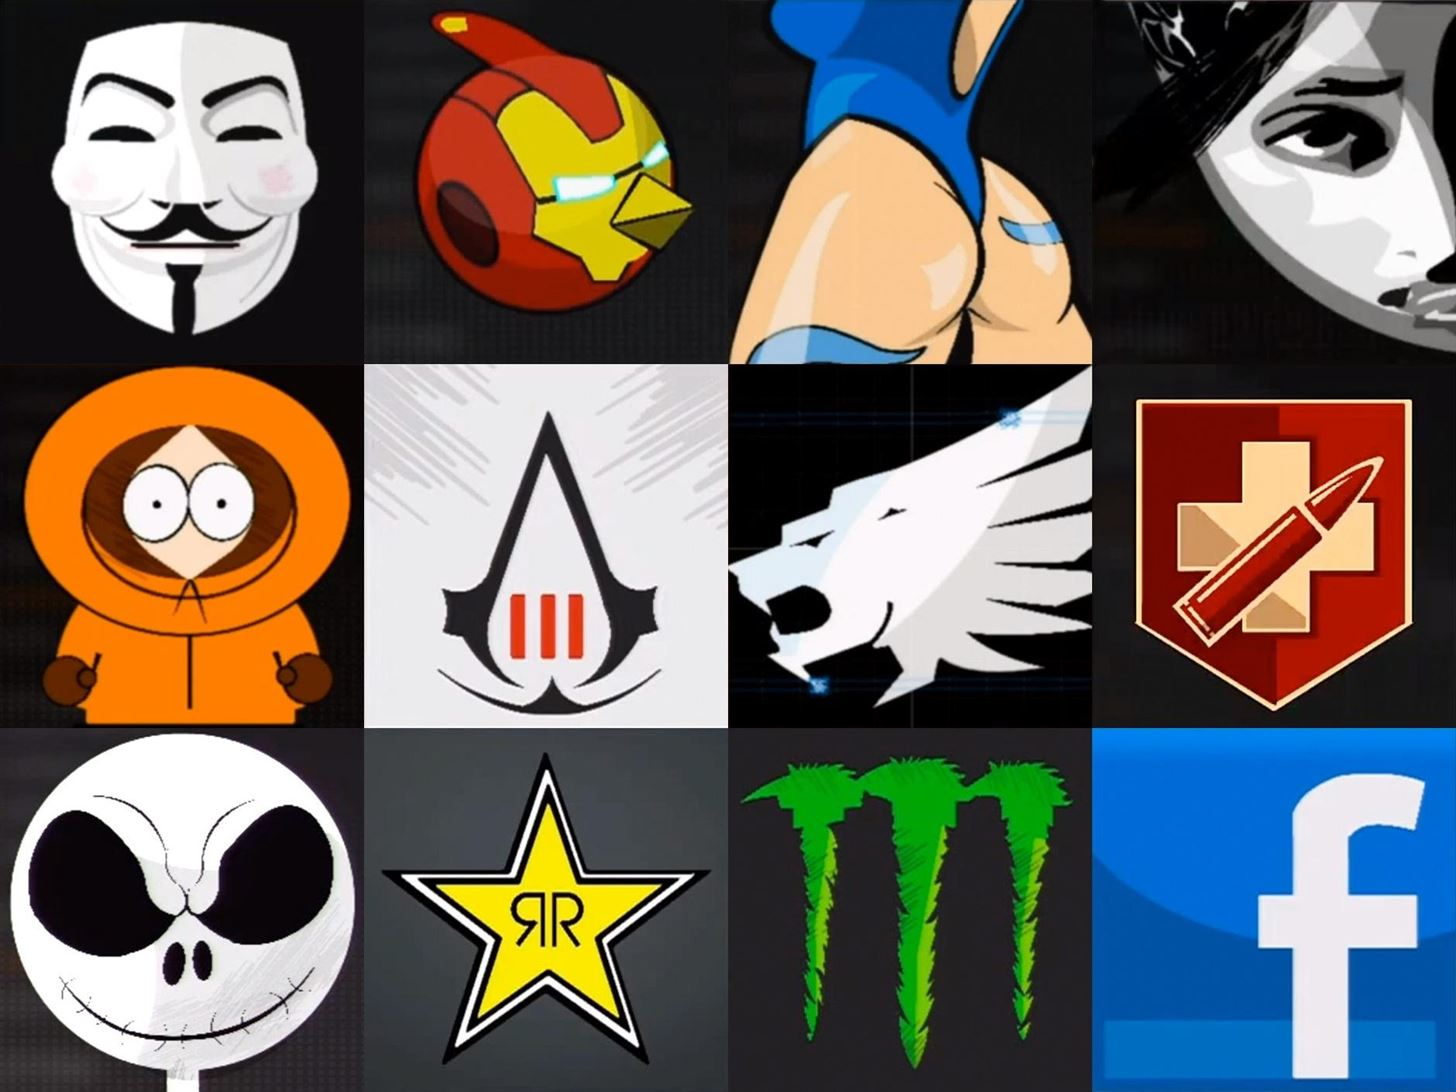 12 more totally kickass emblem designs for call of duty black ops theres more layers and brighter colors which means more badass designs if you missed the first roundup for black ops 2 emblems be sure to check it out biocorpaavc